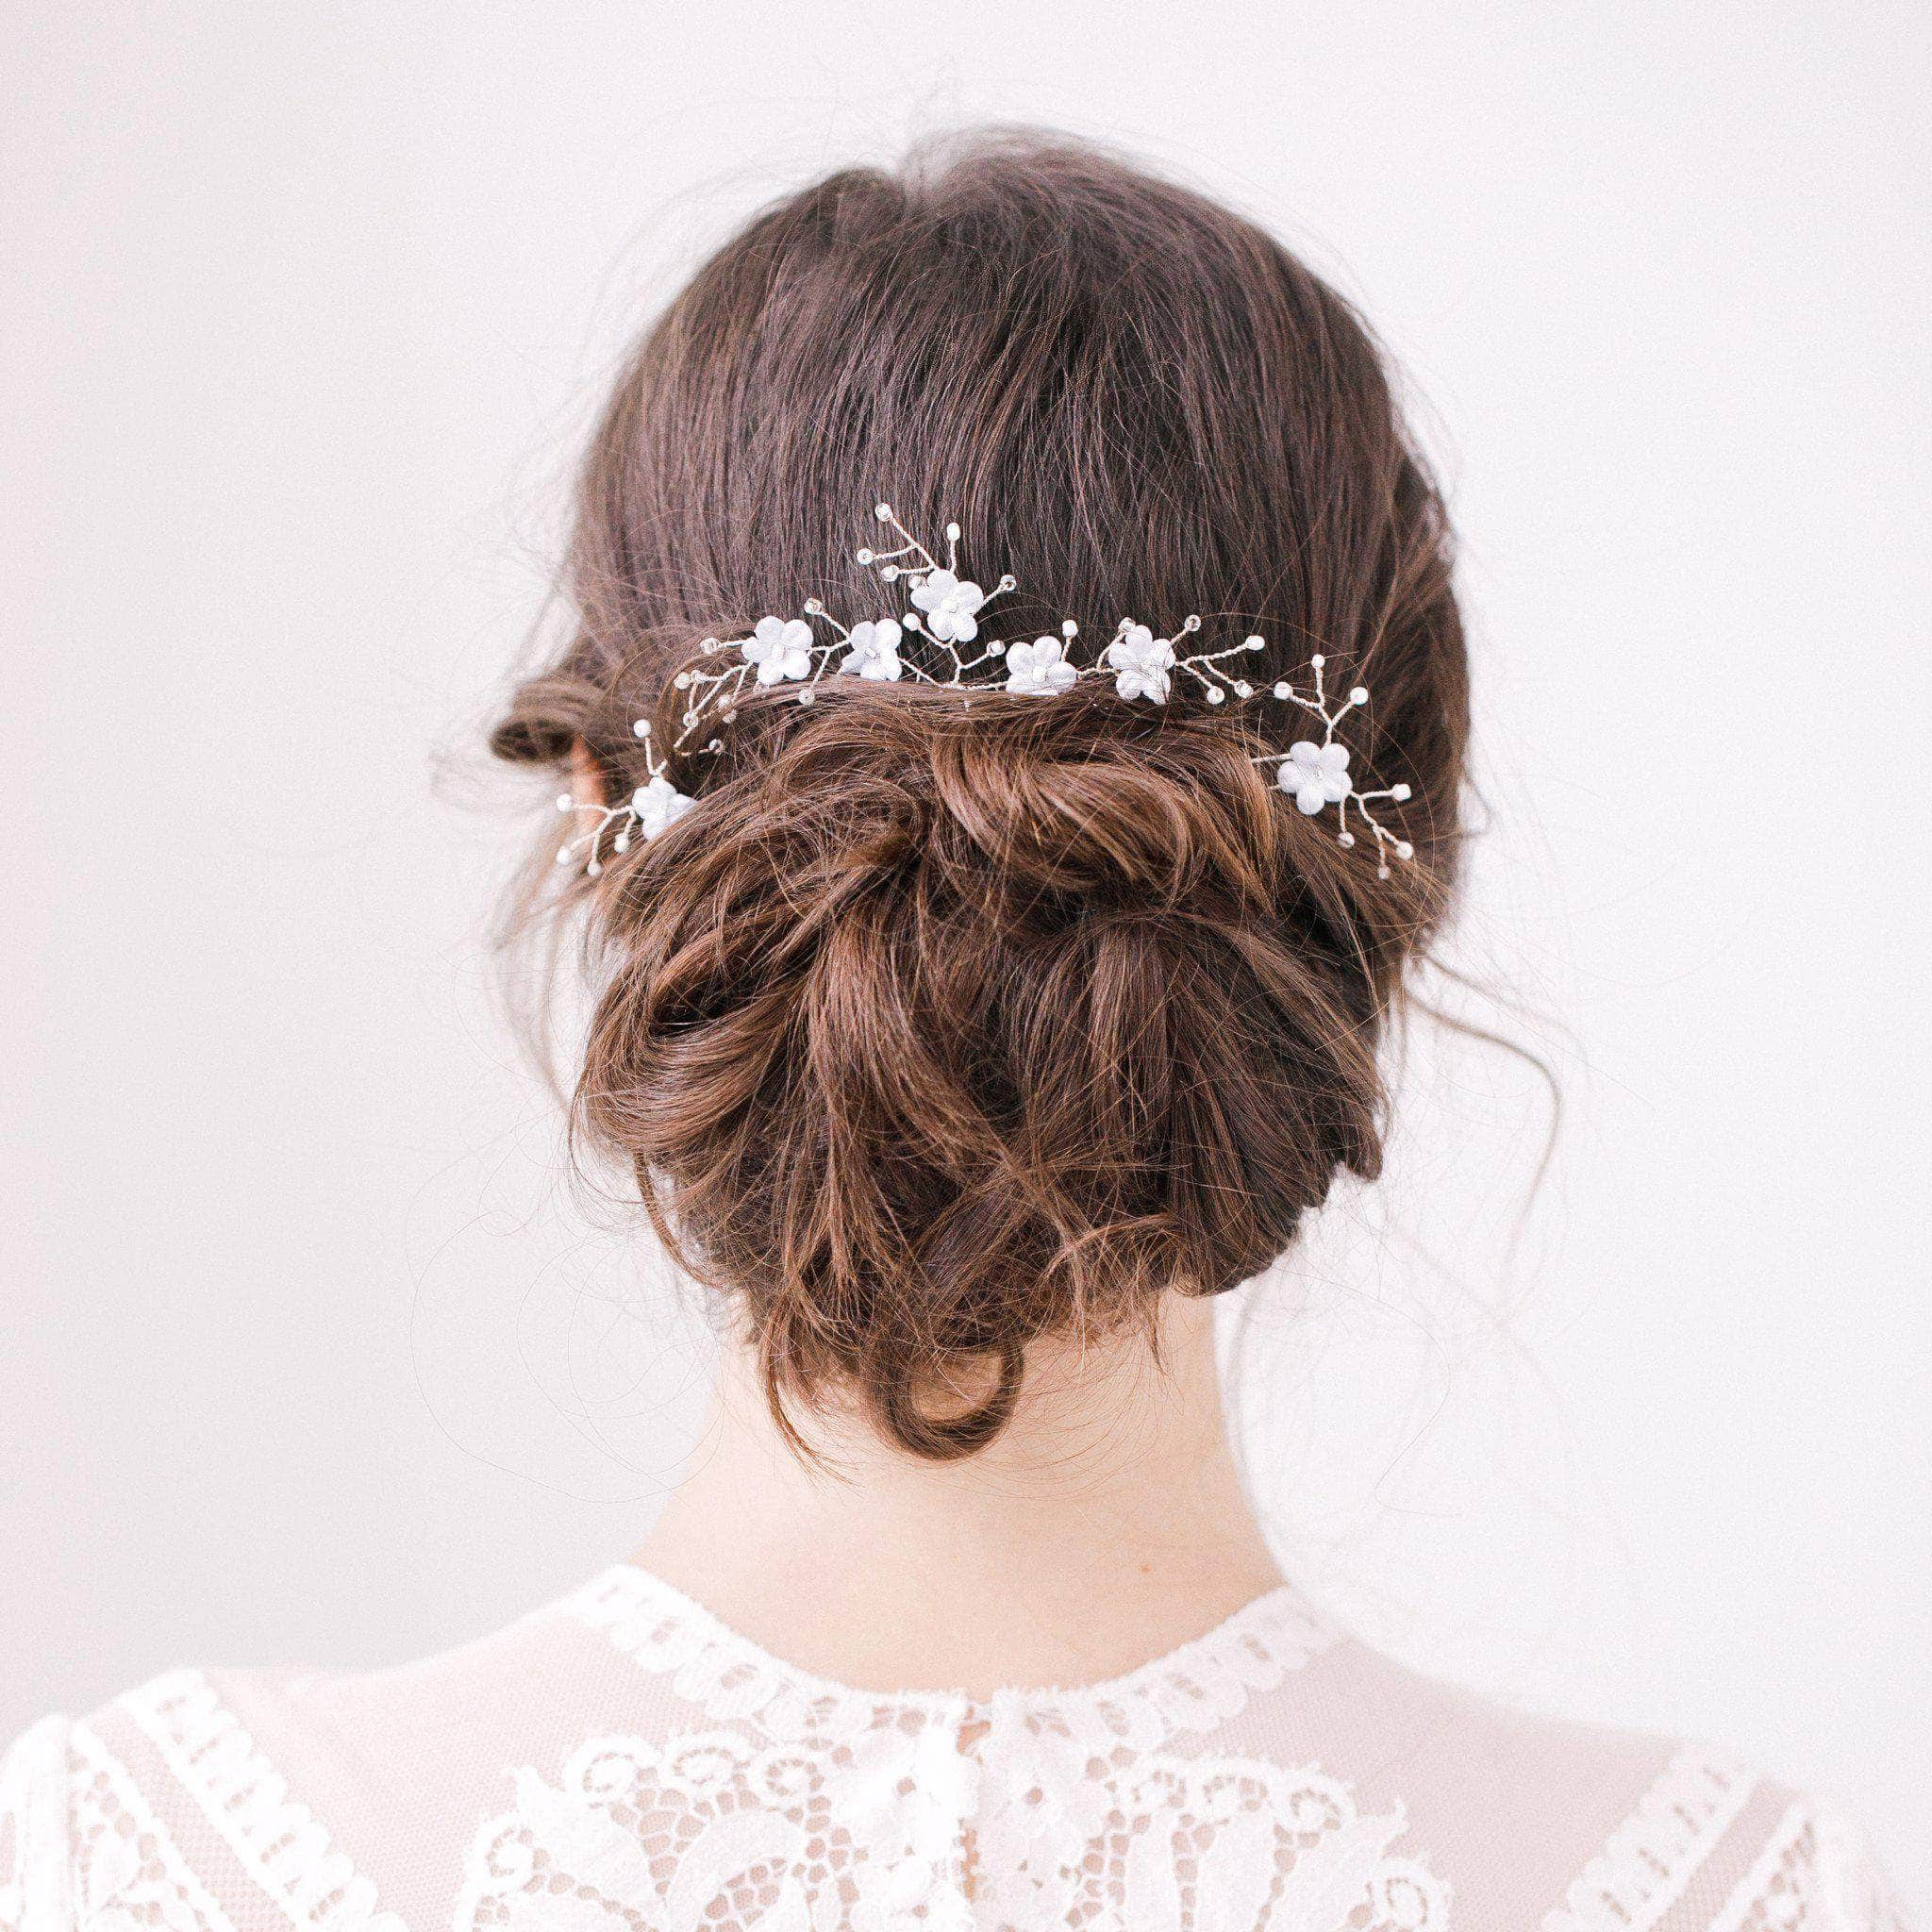 Wedding Hairstyles With Flower: Blue Flower Wedding Hair Pins With Silver Sprays Set (x3